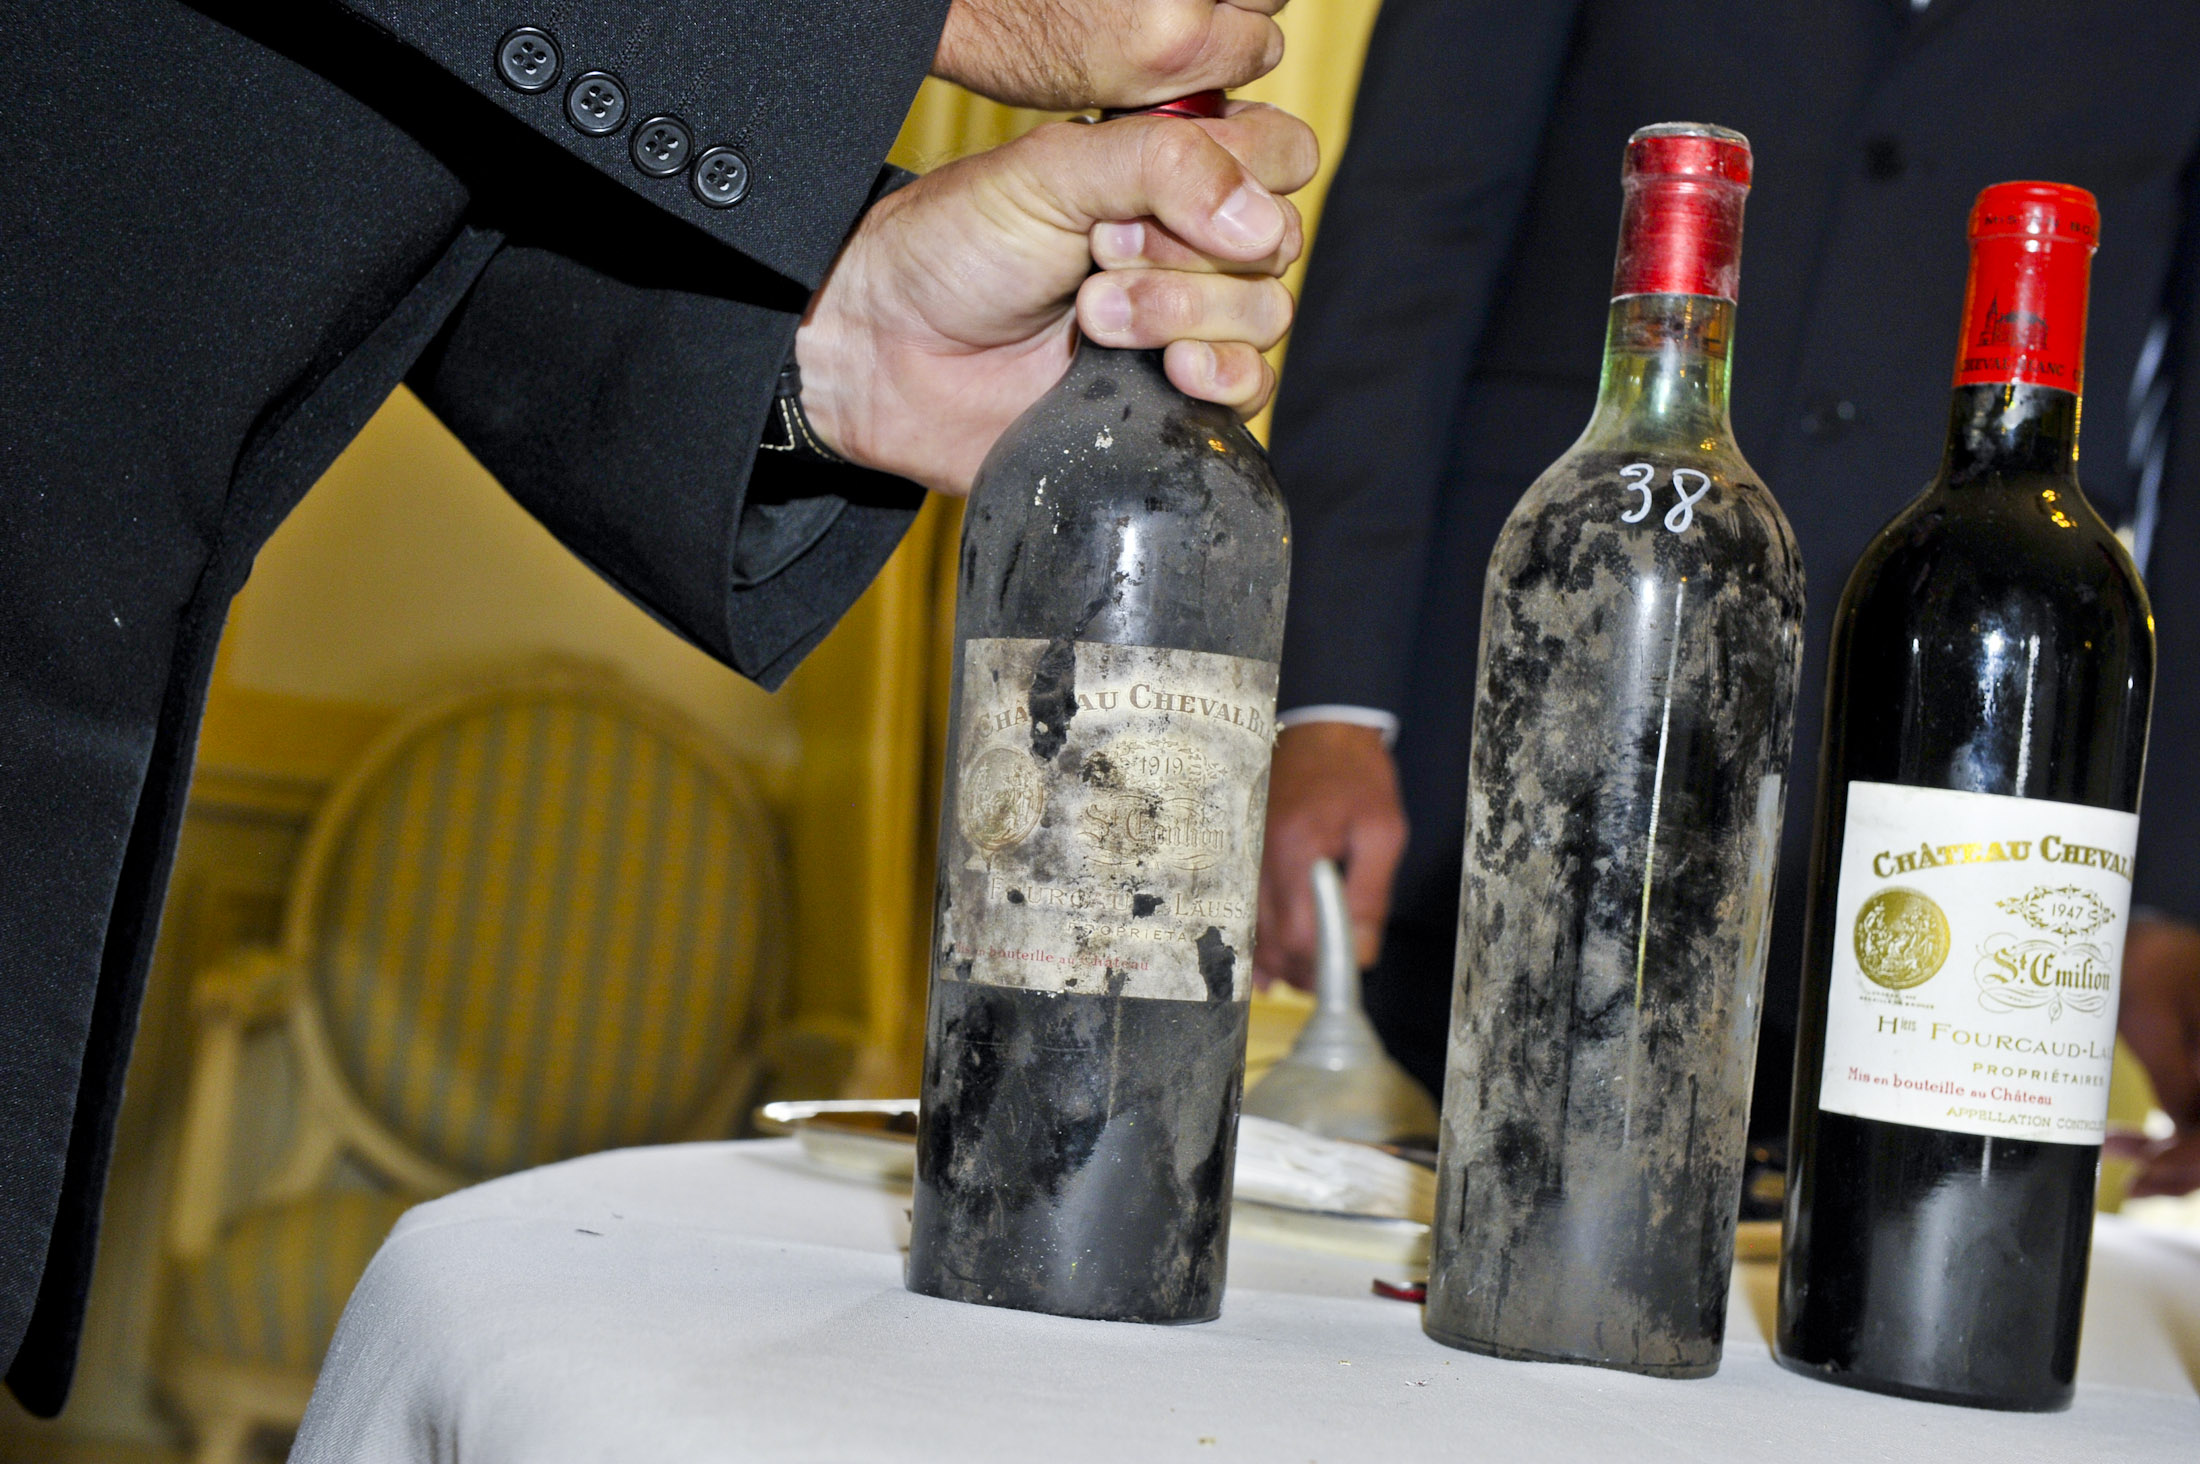 10 Most Crazy Expensive Wines In the World